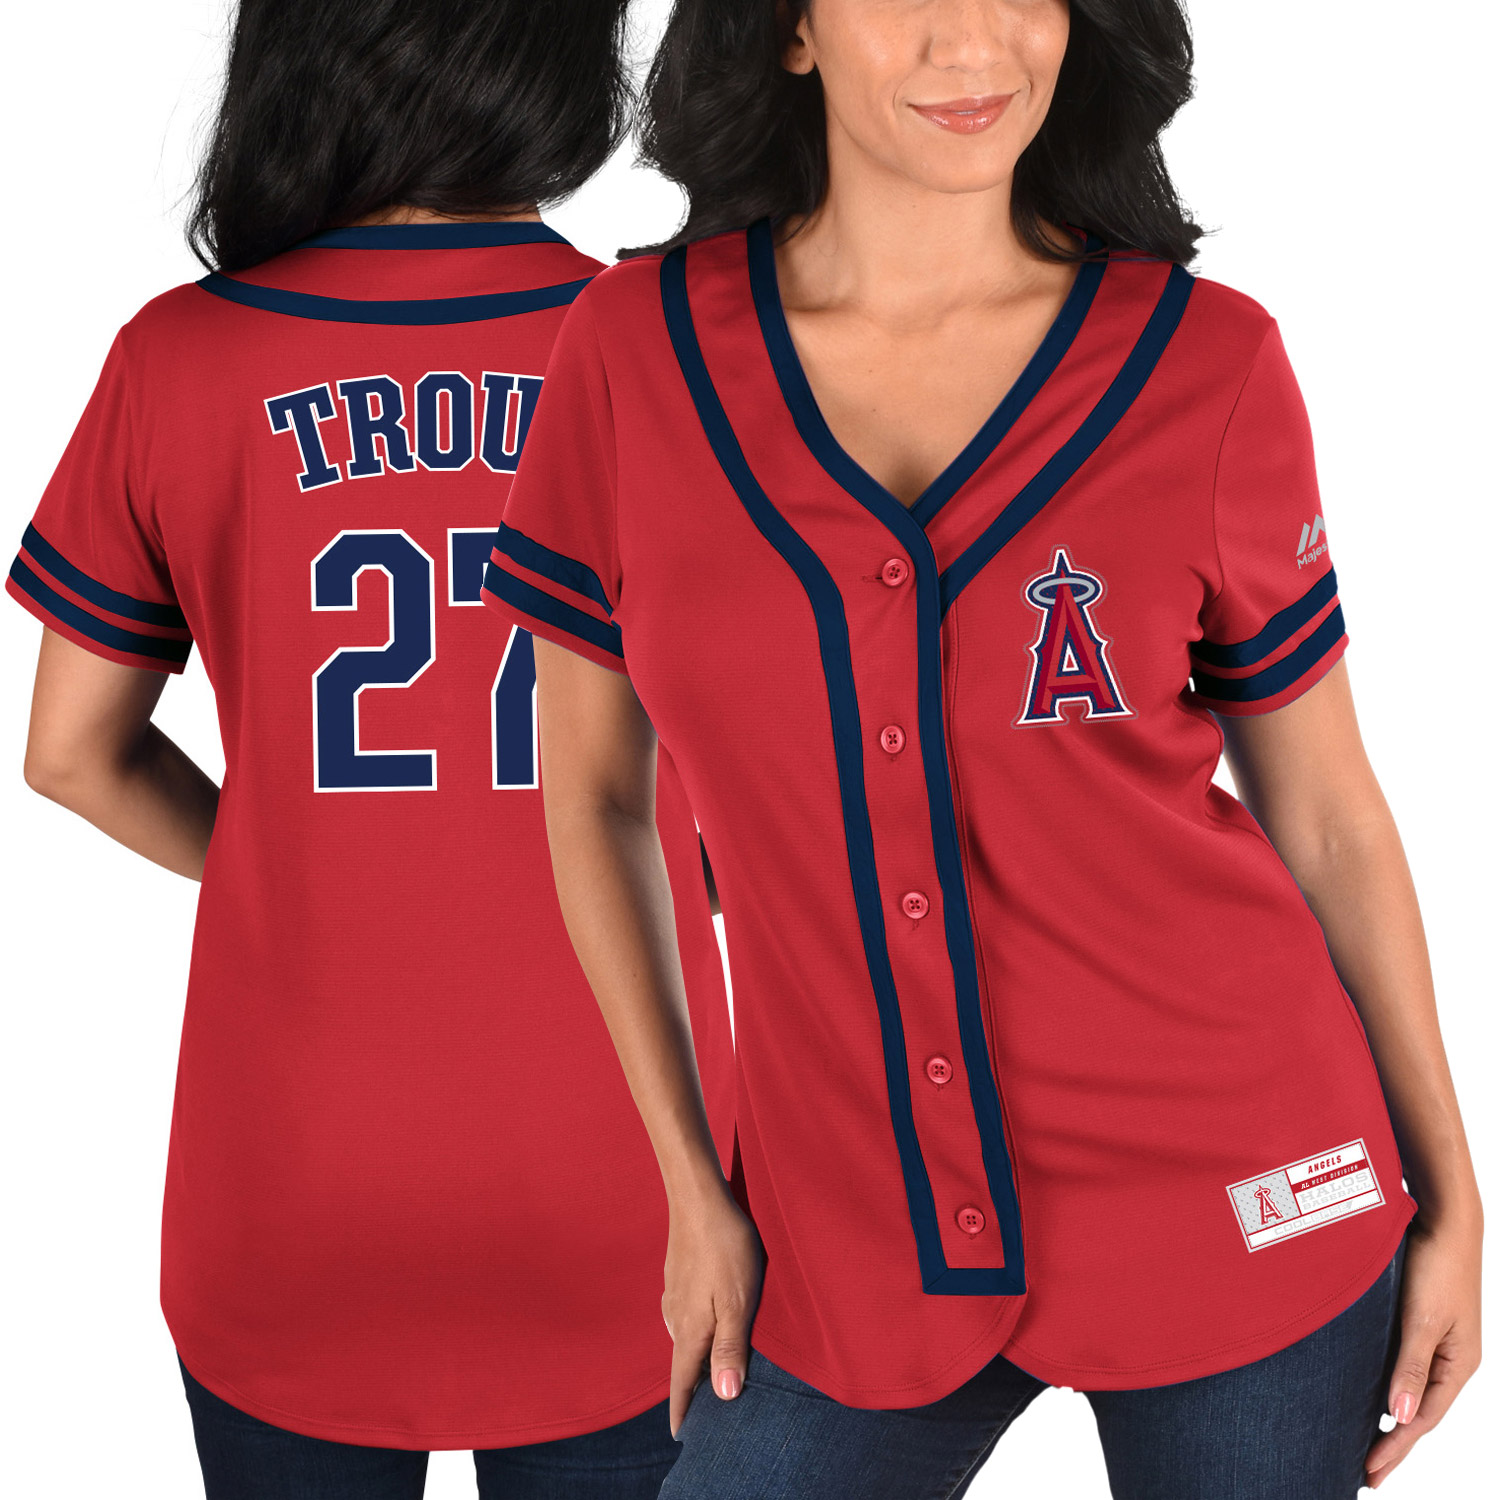 Mike Trout Los Angeles Angels Majestic Women's Absolute Victory Fashion Player Jersey - Red/Navy